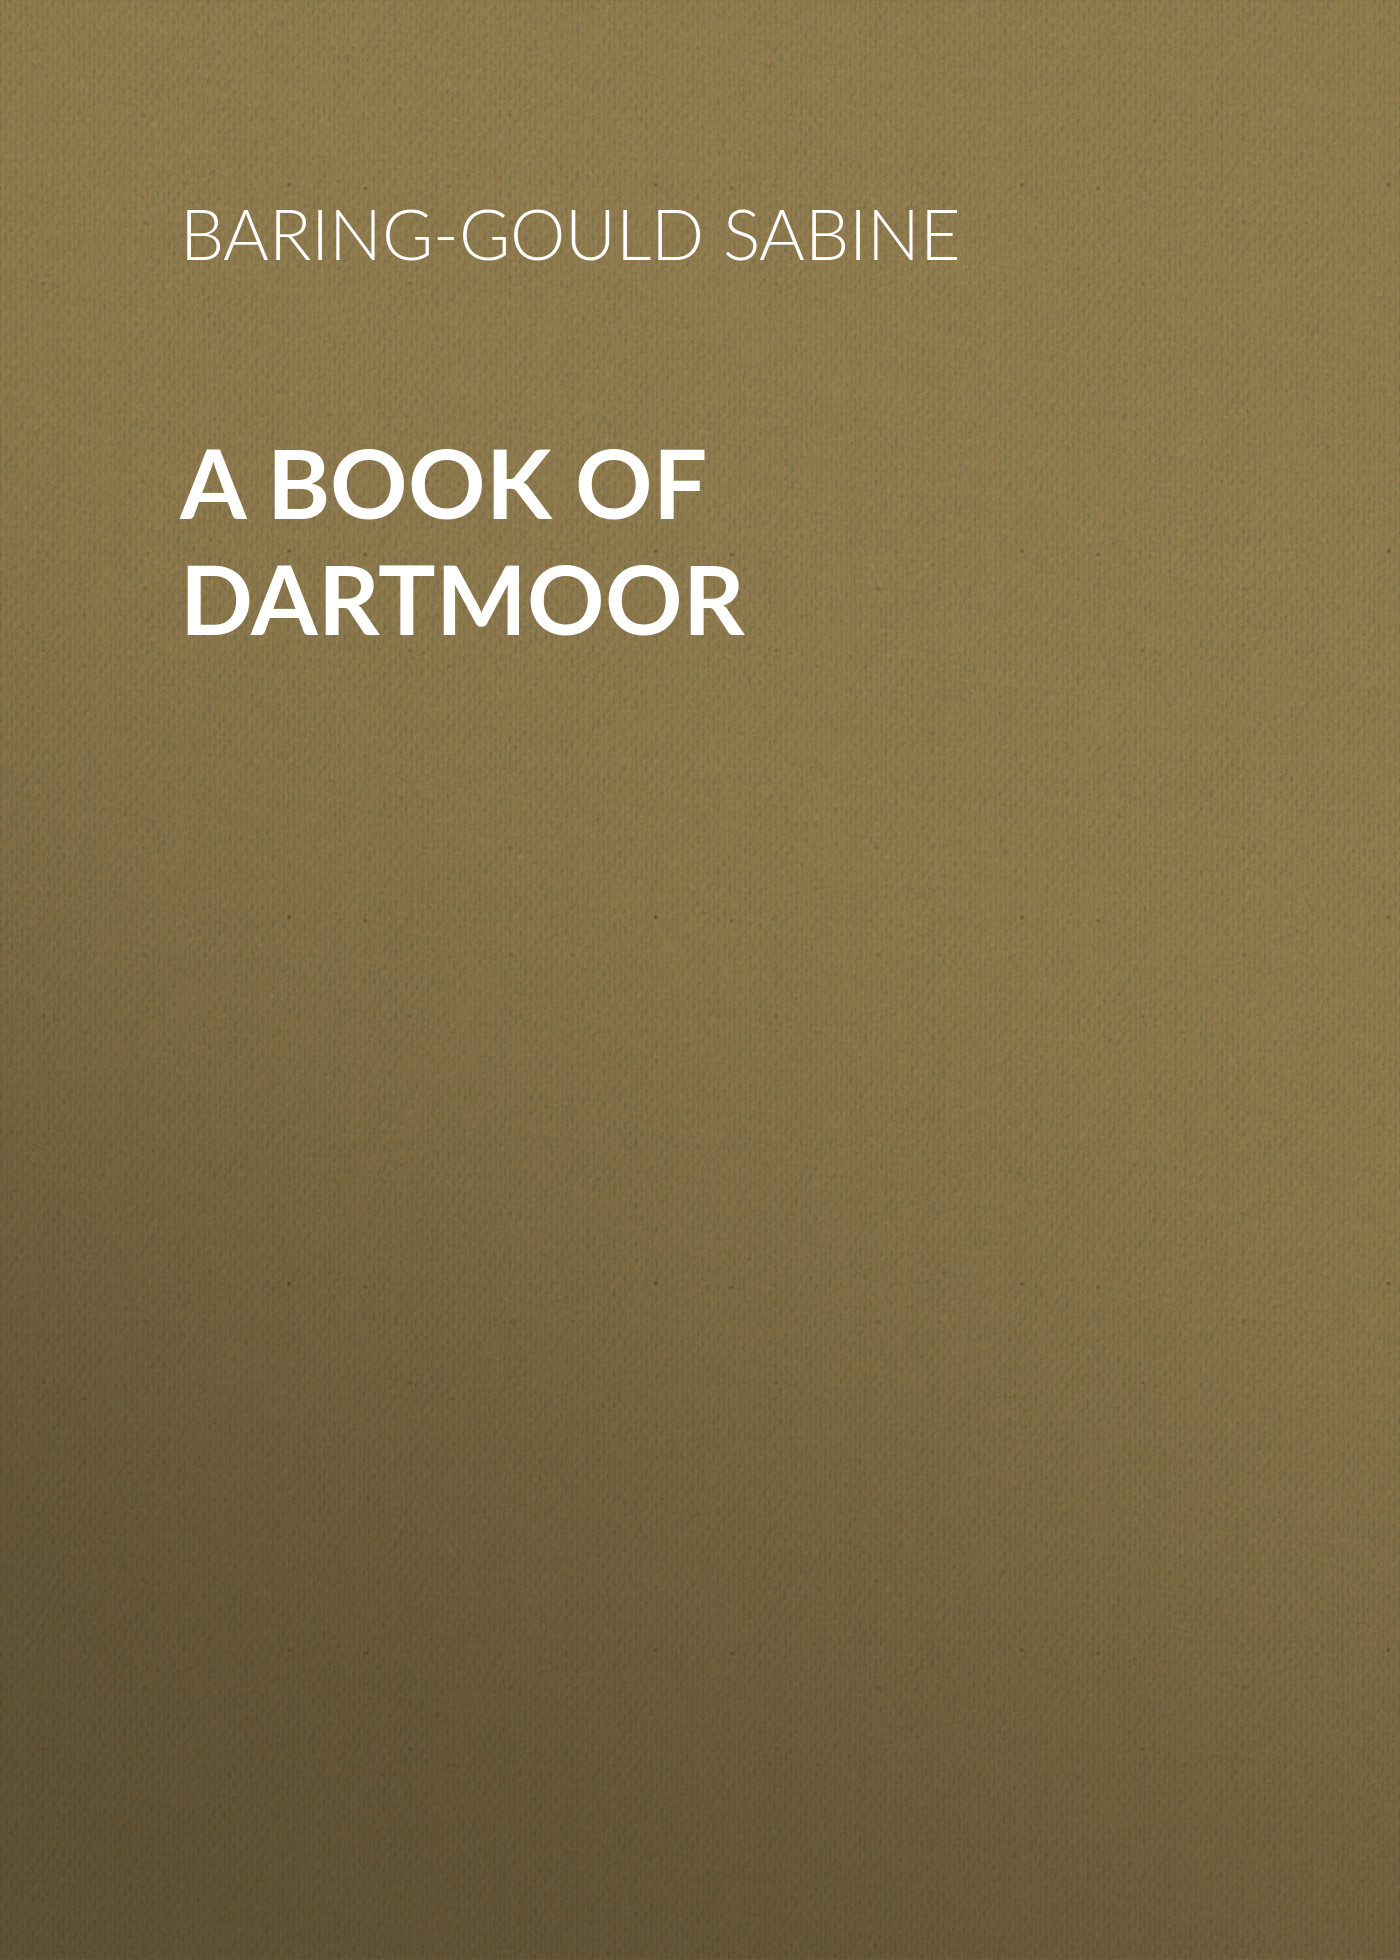 Baring-Gould Sabine A Book of Dartmoor цена